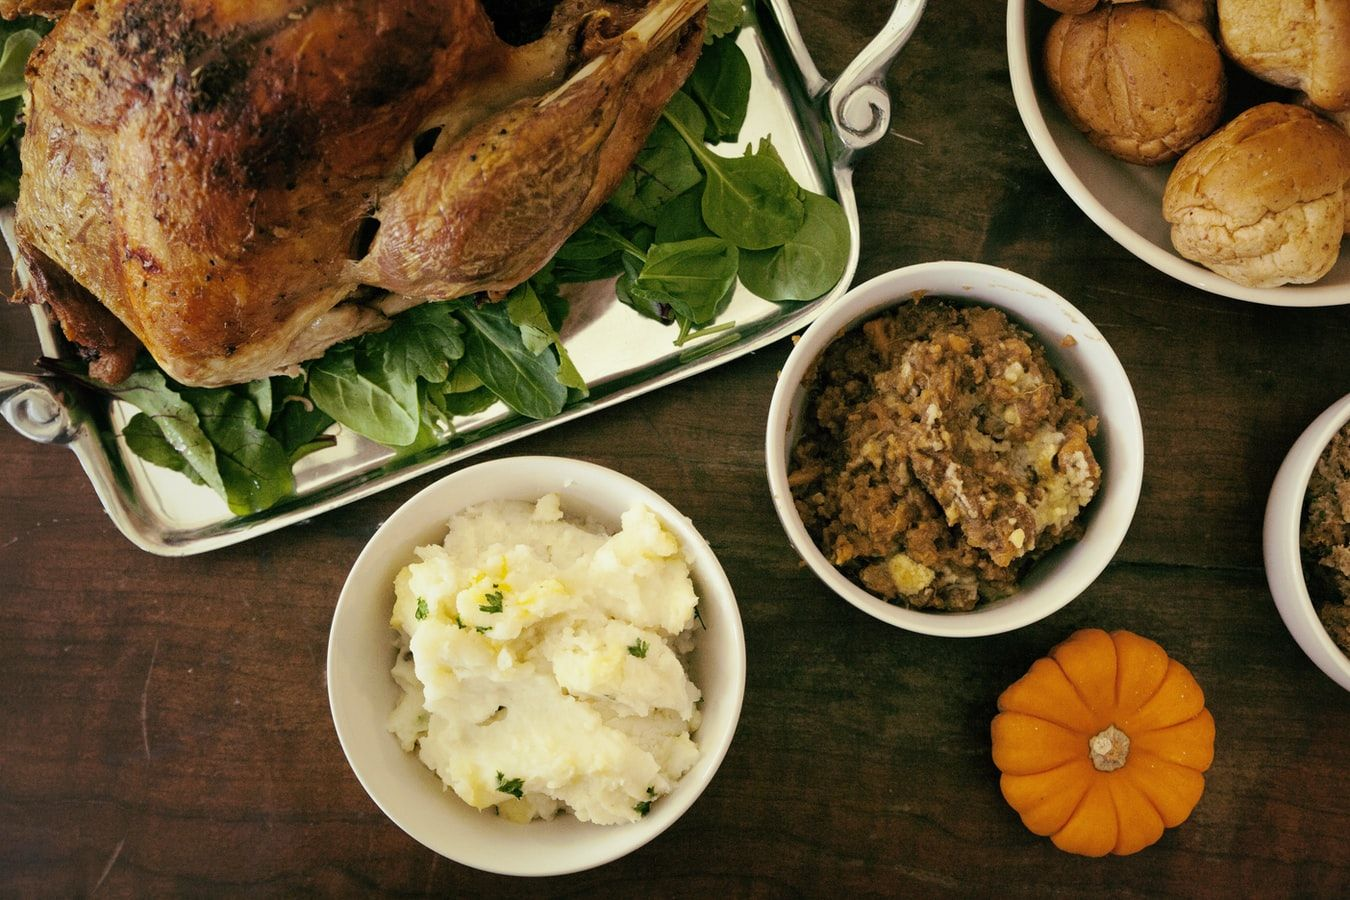 Full cooked turkey on a bed of spinach leaves surrounded by side dishes like mashed potatoes and stuffing and bread rolls and a pumpkin